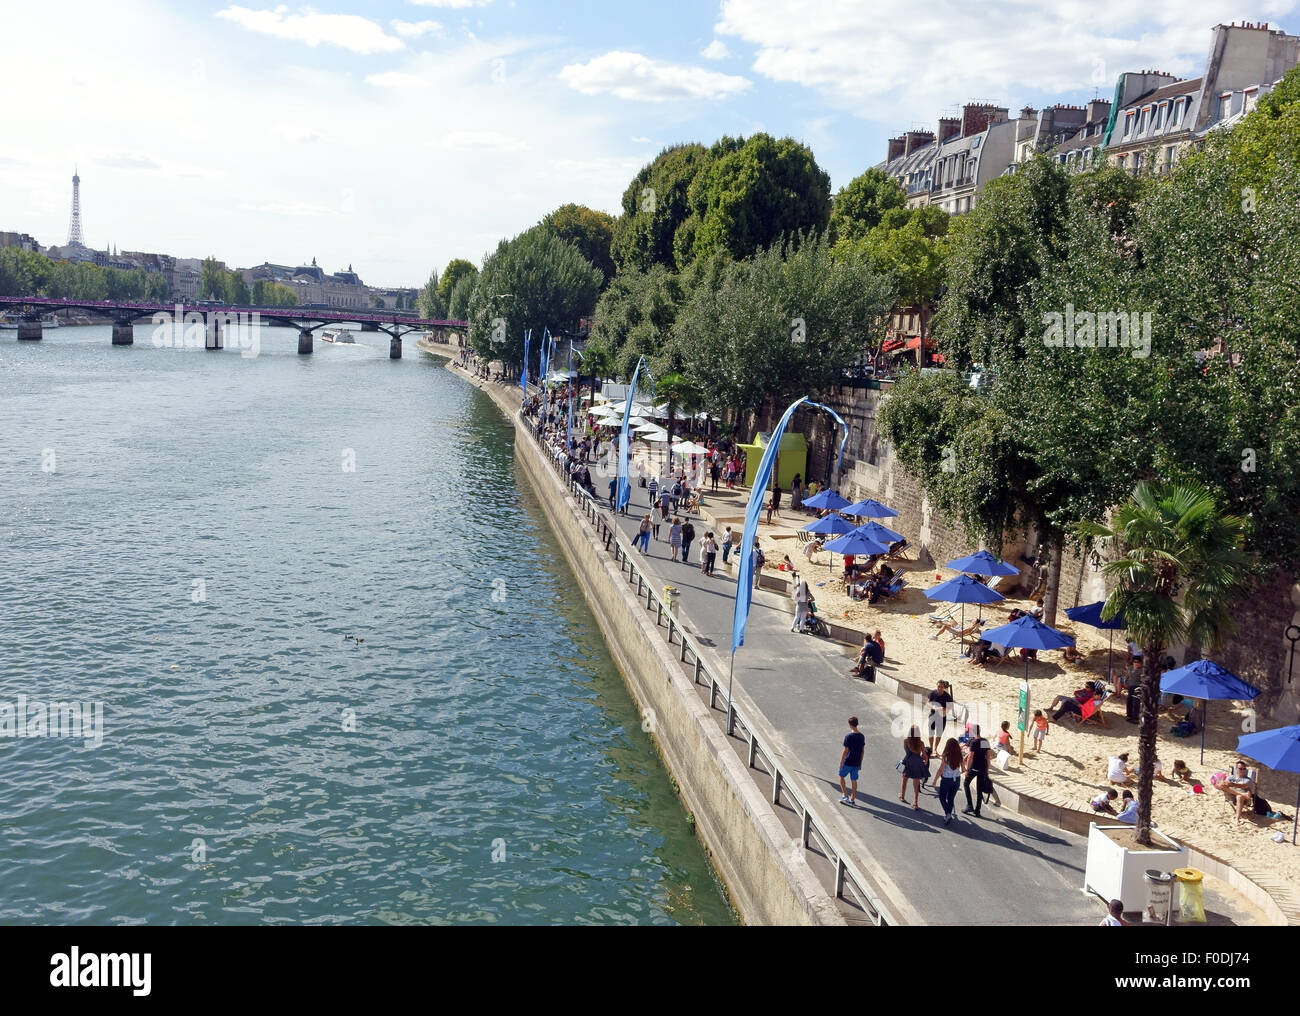 Artificial beach for summer along banks of River Seine in Paris, France Stock Photo